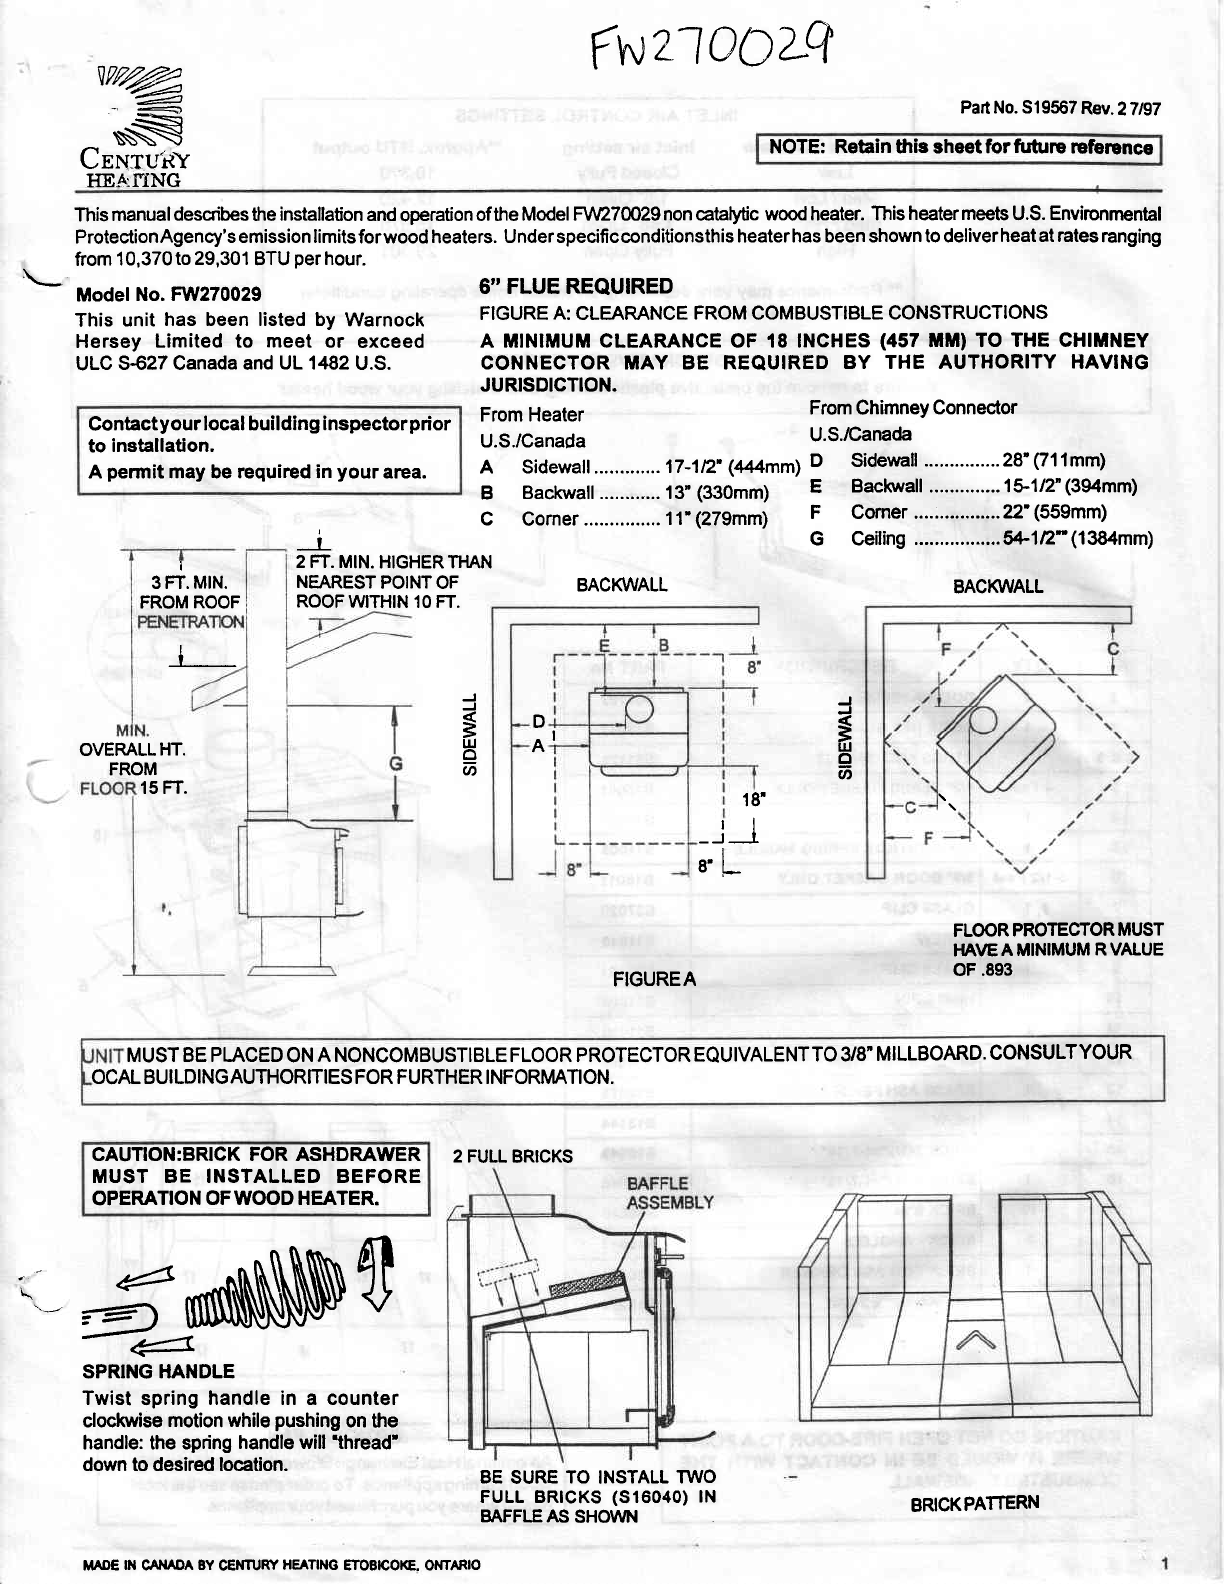 fwzloozQ - Page 12 Of Vermont Casting Stove AIR TIGHT WOOD STOVE User Guide